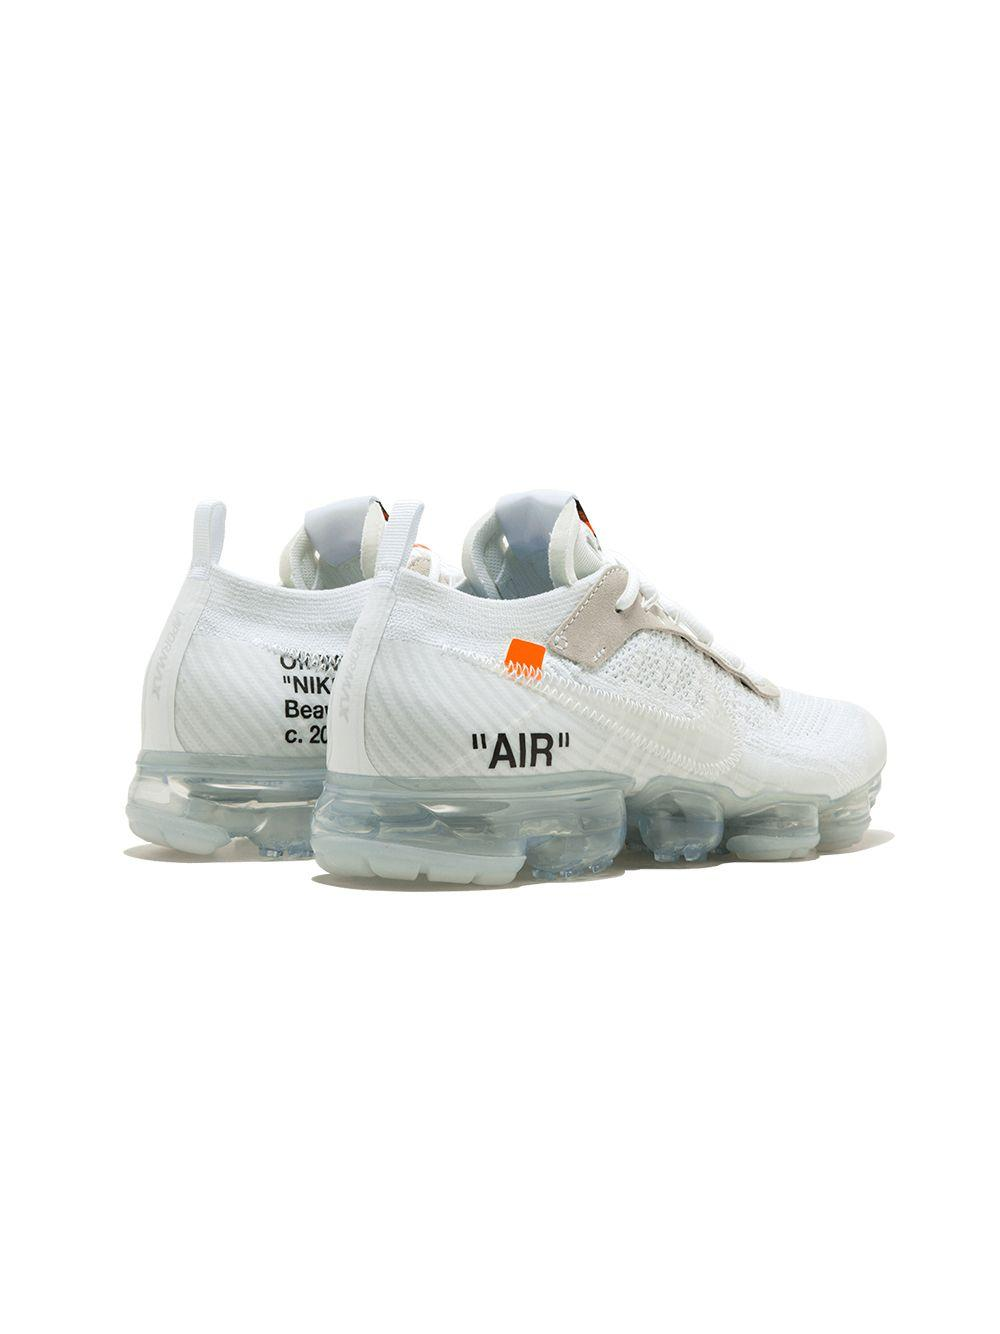 6fda773011 Nike X Off-white The 10 : Air Vapormax Flyknit Sneakers in White for ...